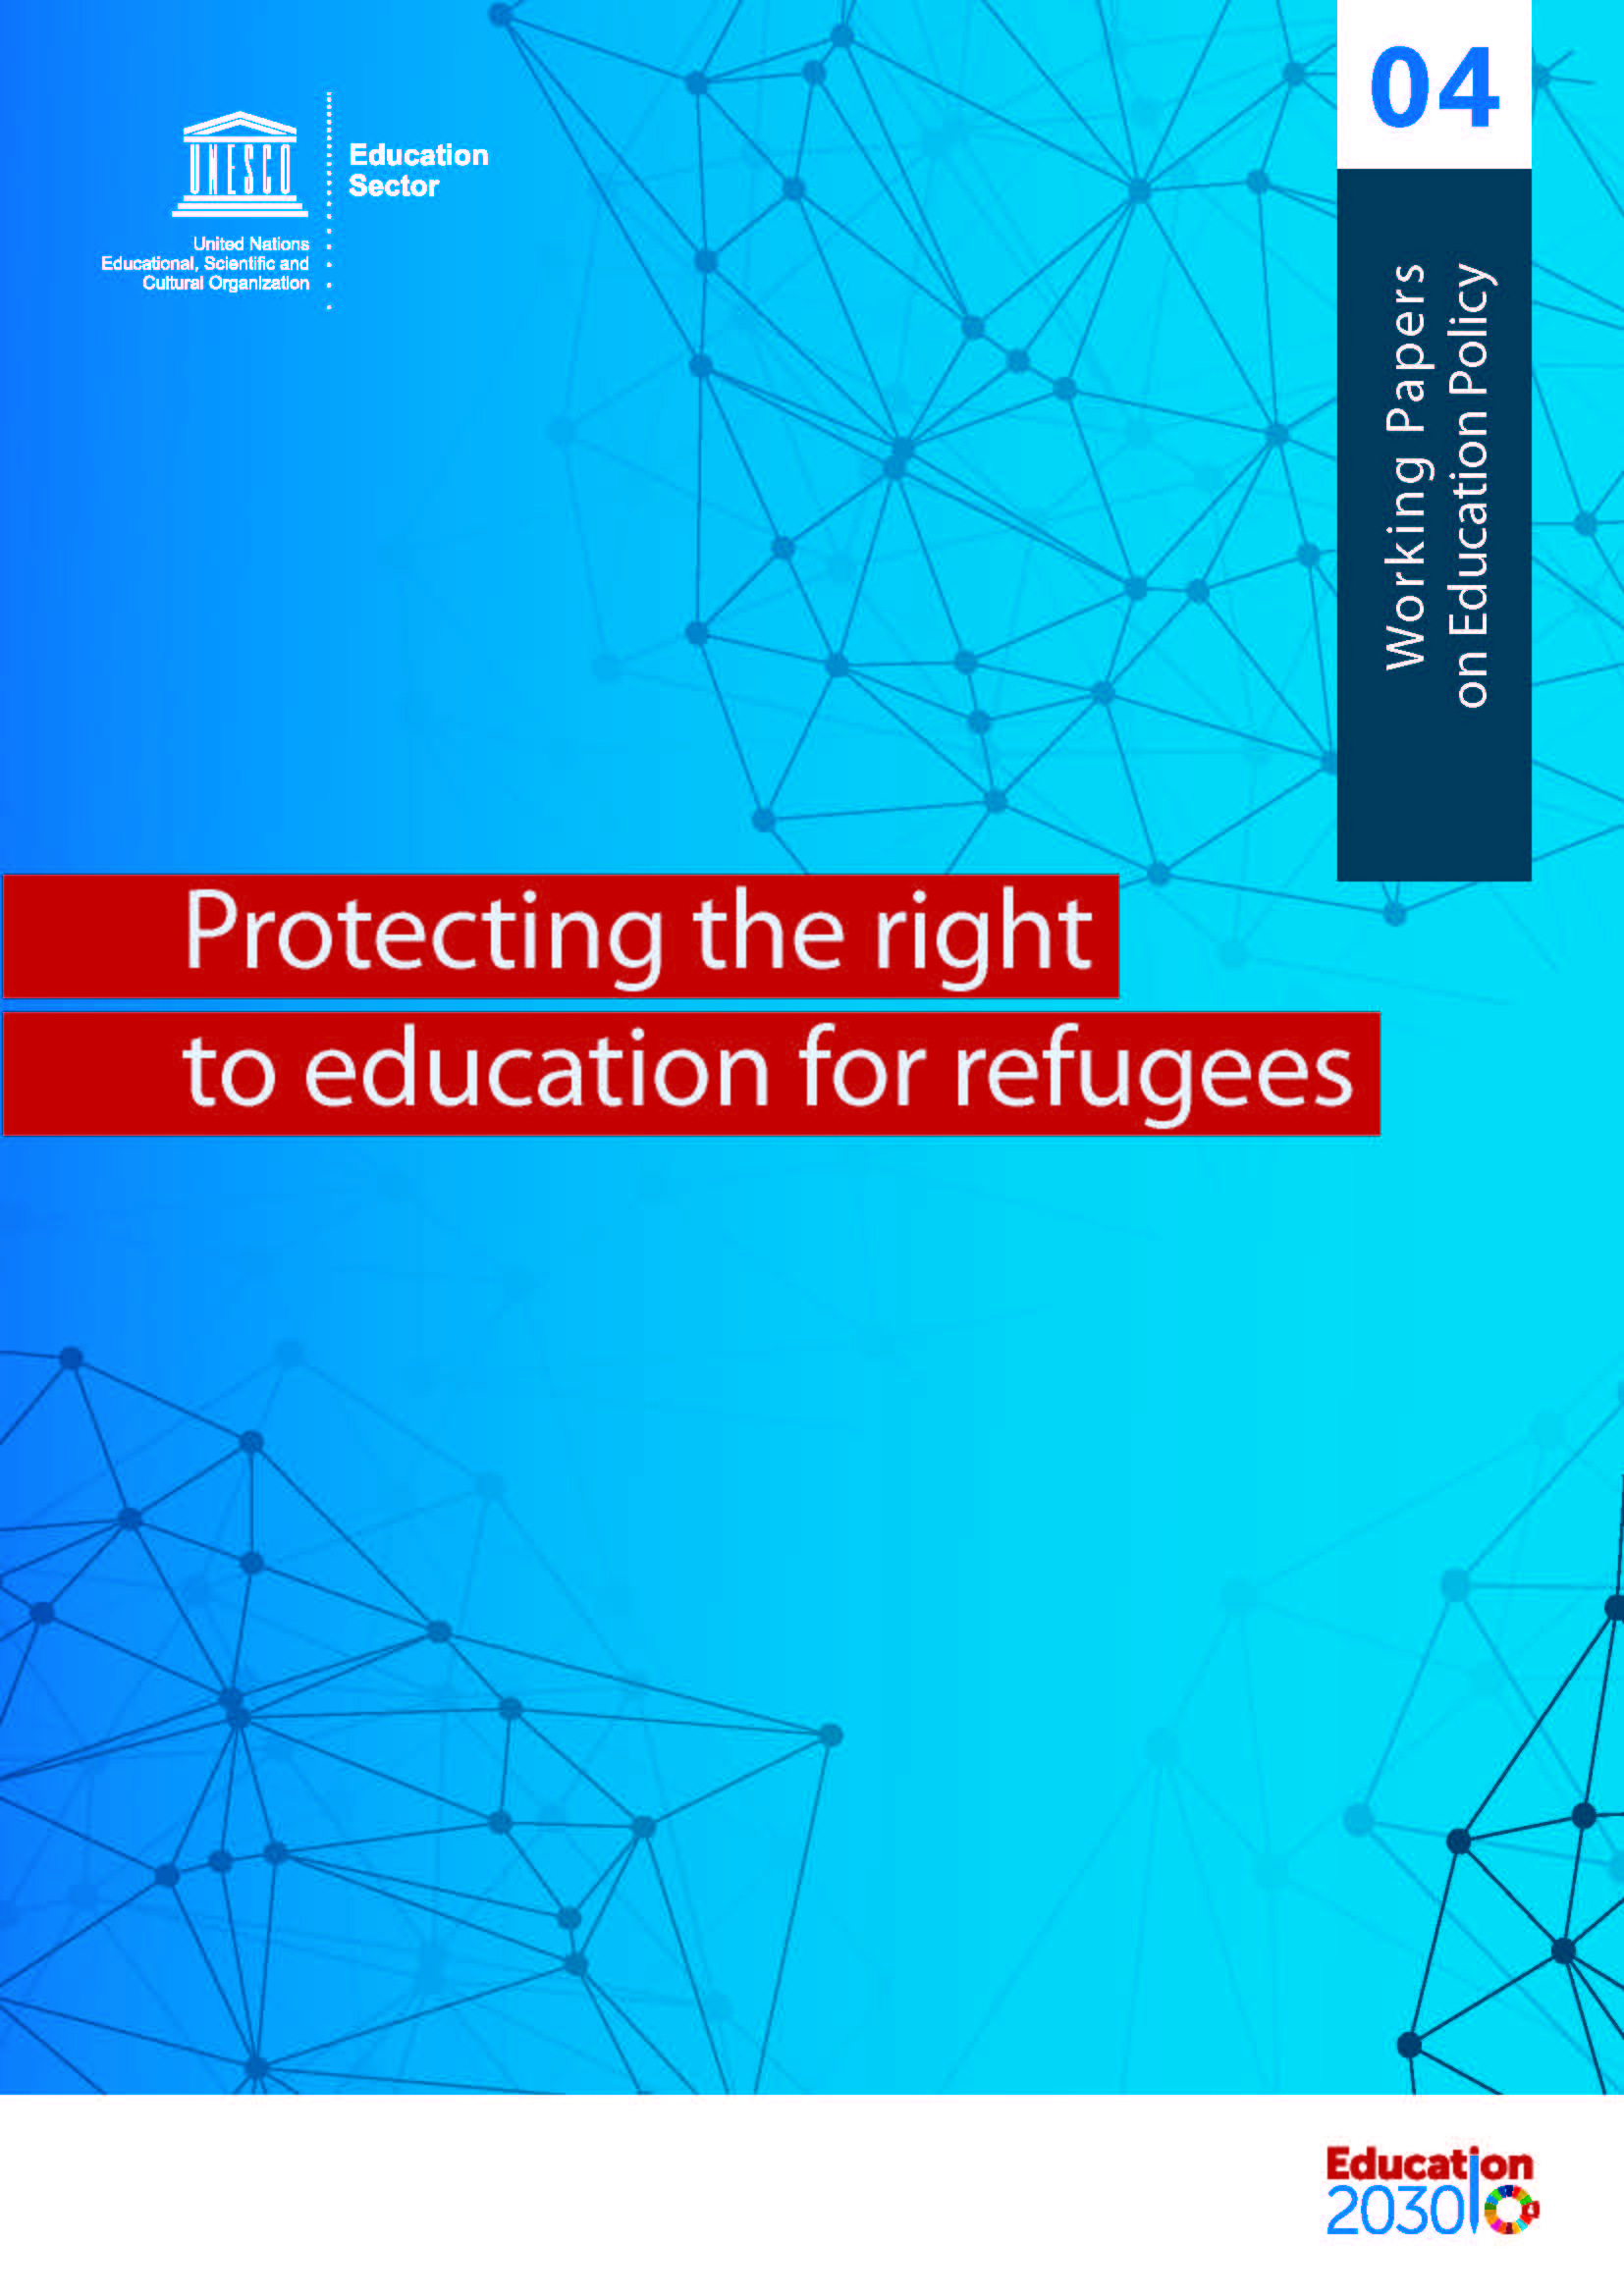 Protecting the right to education for refugees